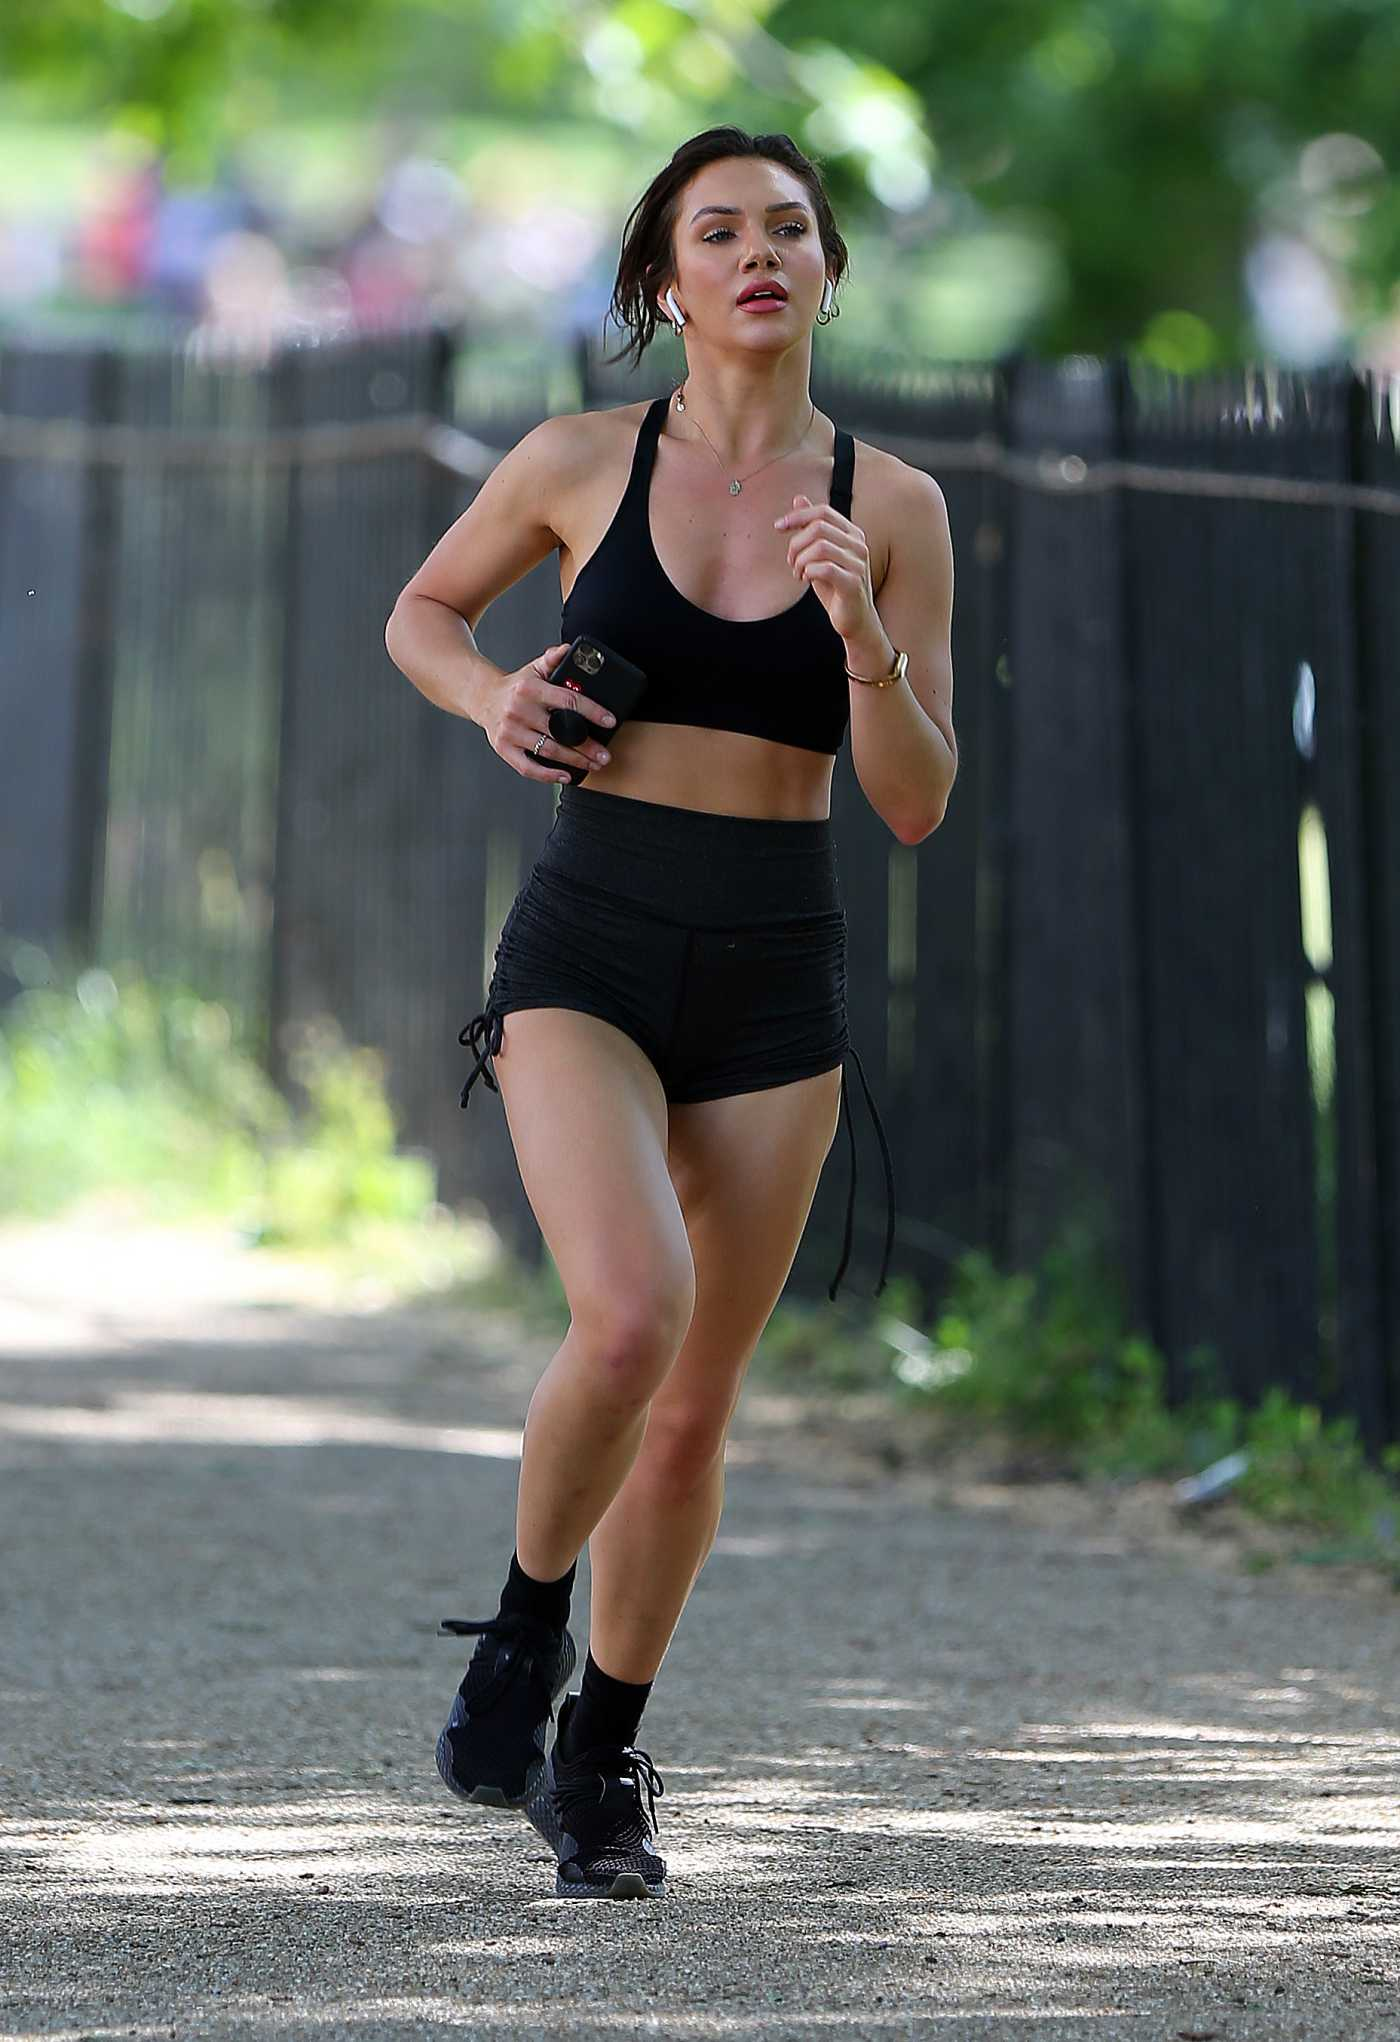 Alexandra Cane in a Black Sports Bra Does a Morning Jog in London 05/25/2020